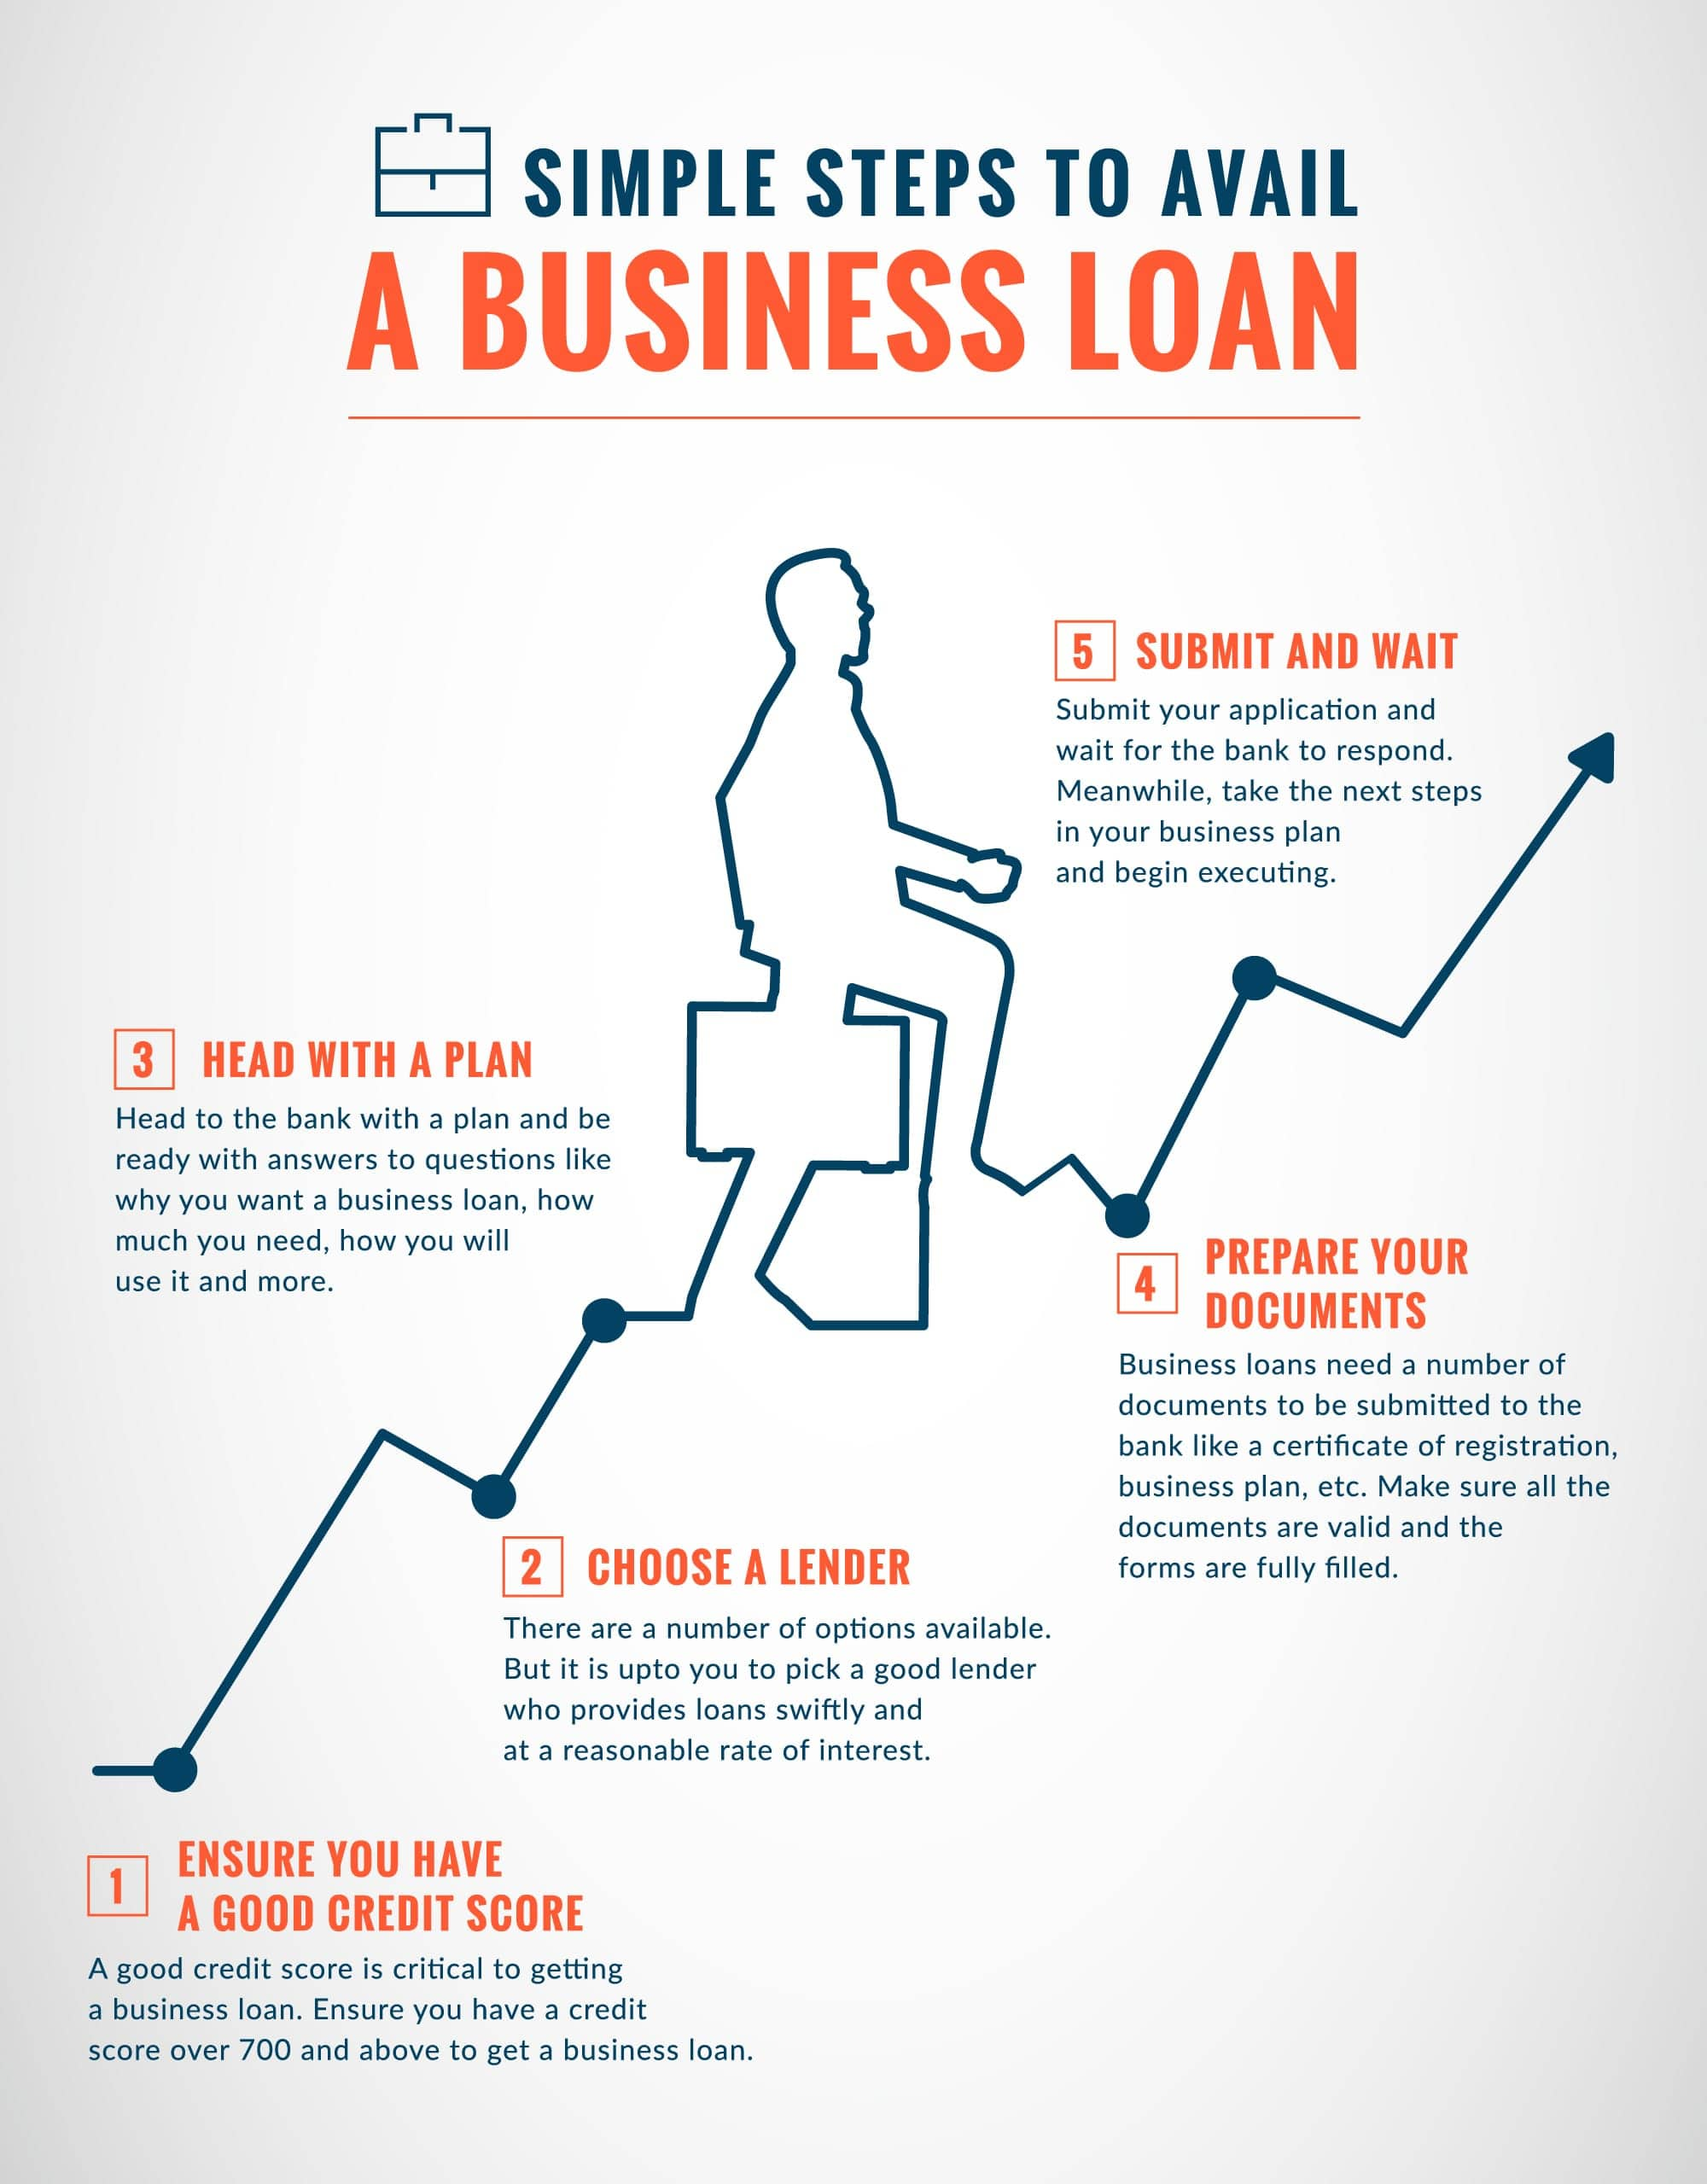 5 steps to avail a Business Loan Infographic